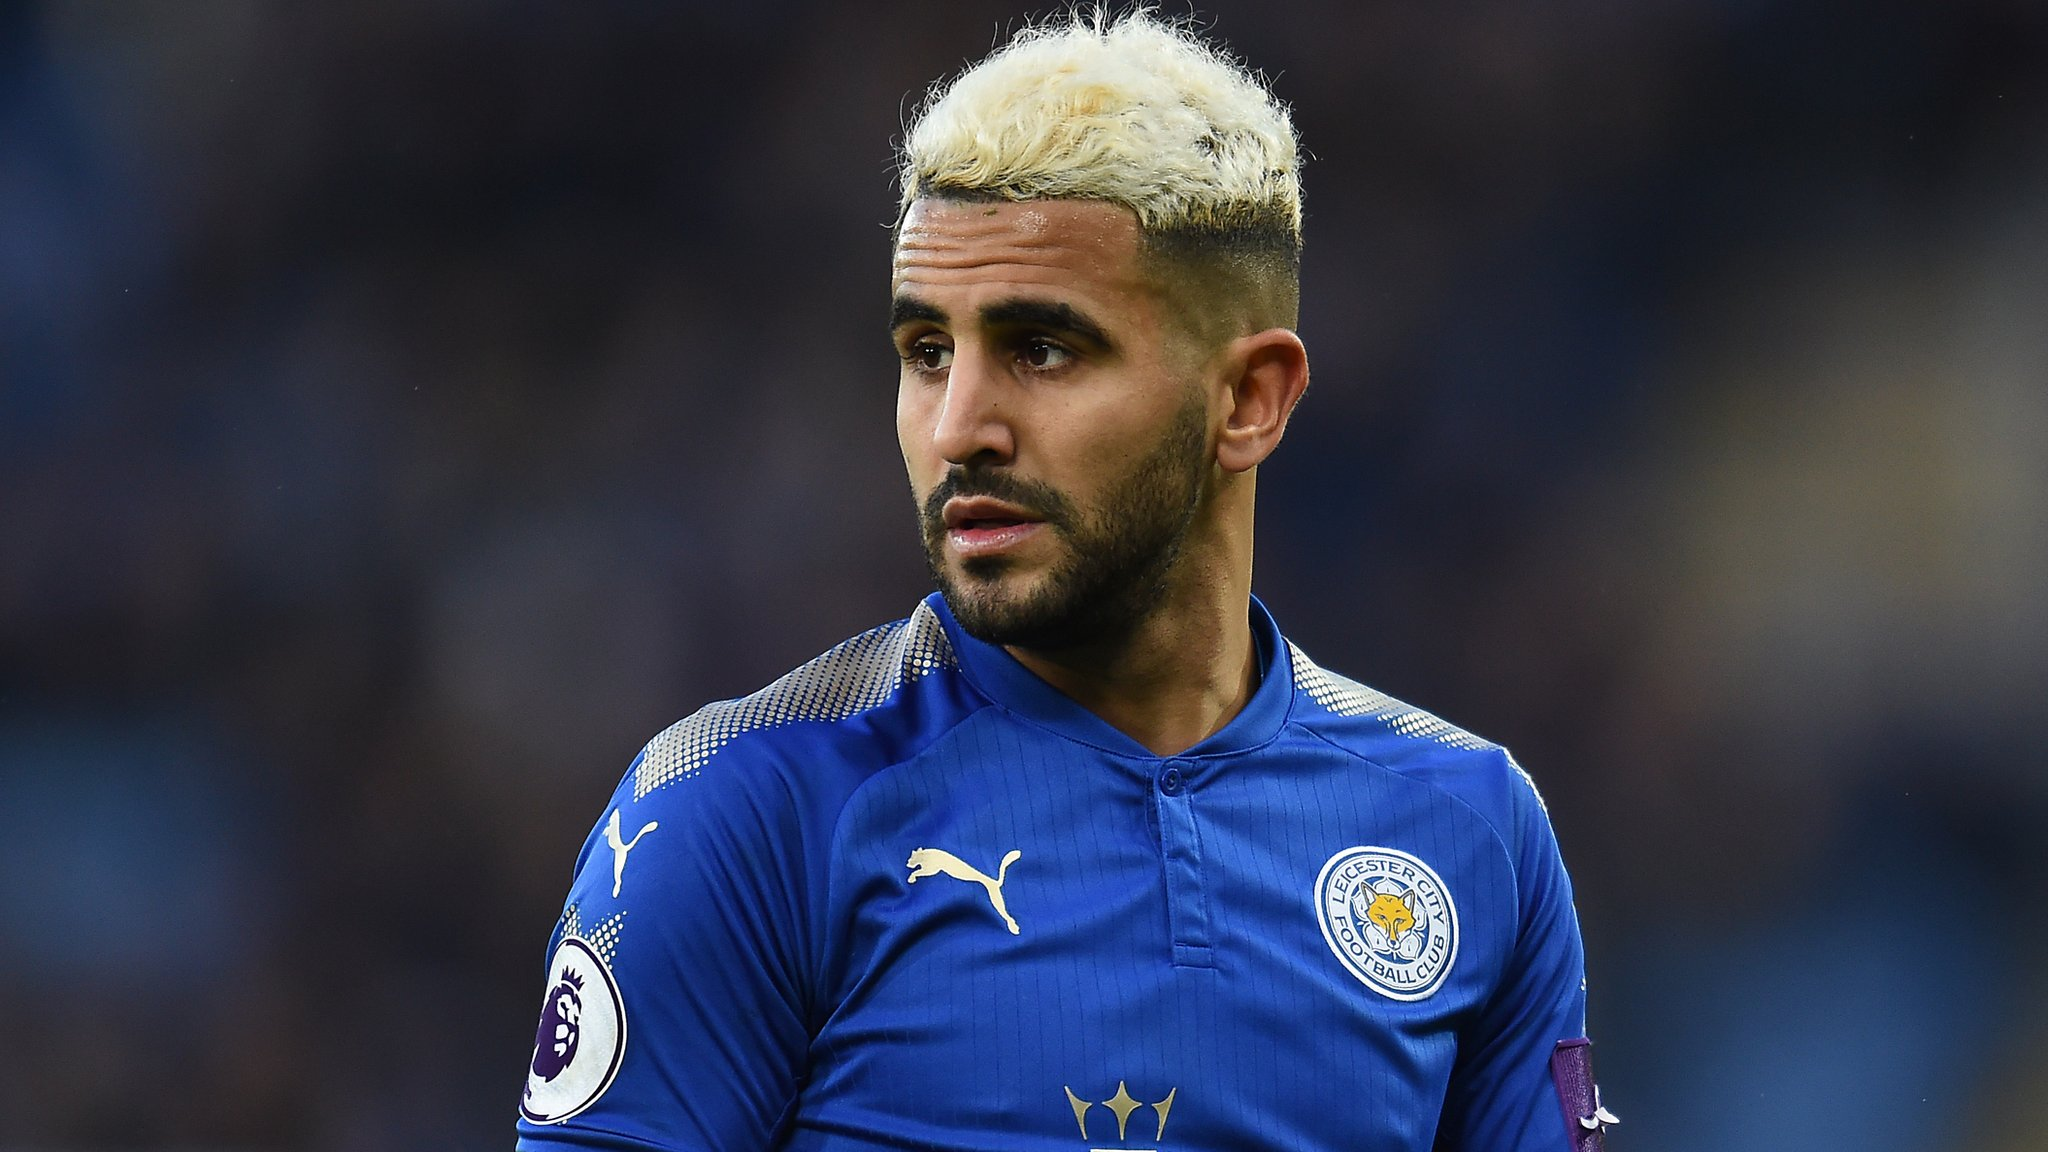 Liverpool set to sign Mahrez - Sunday's gossip column